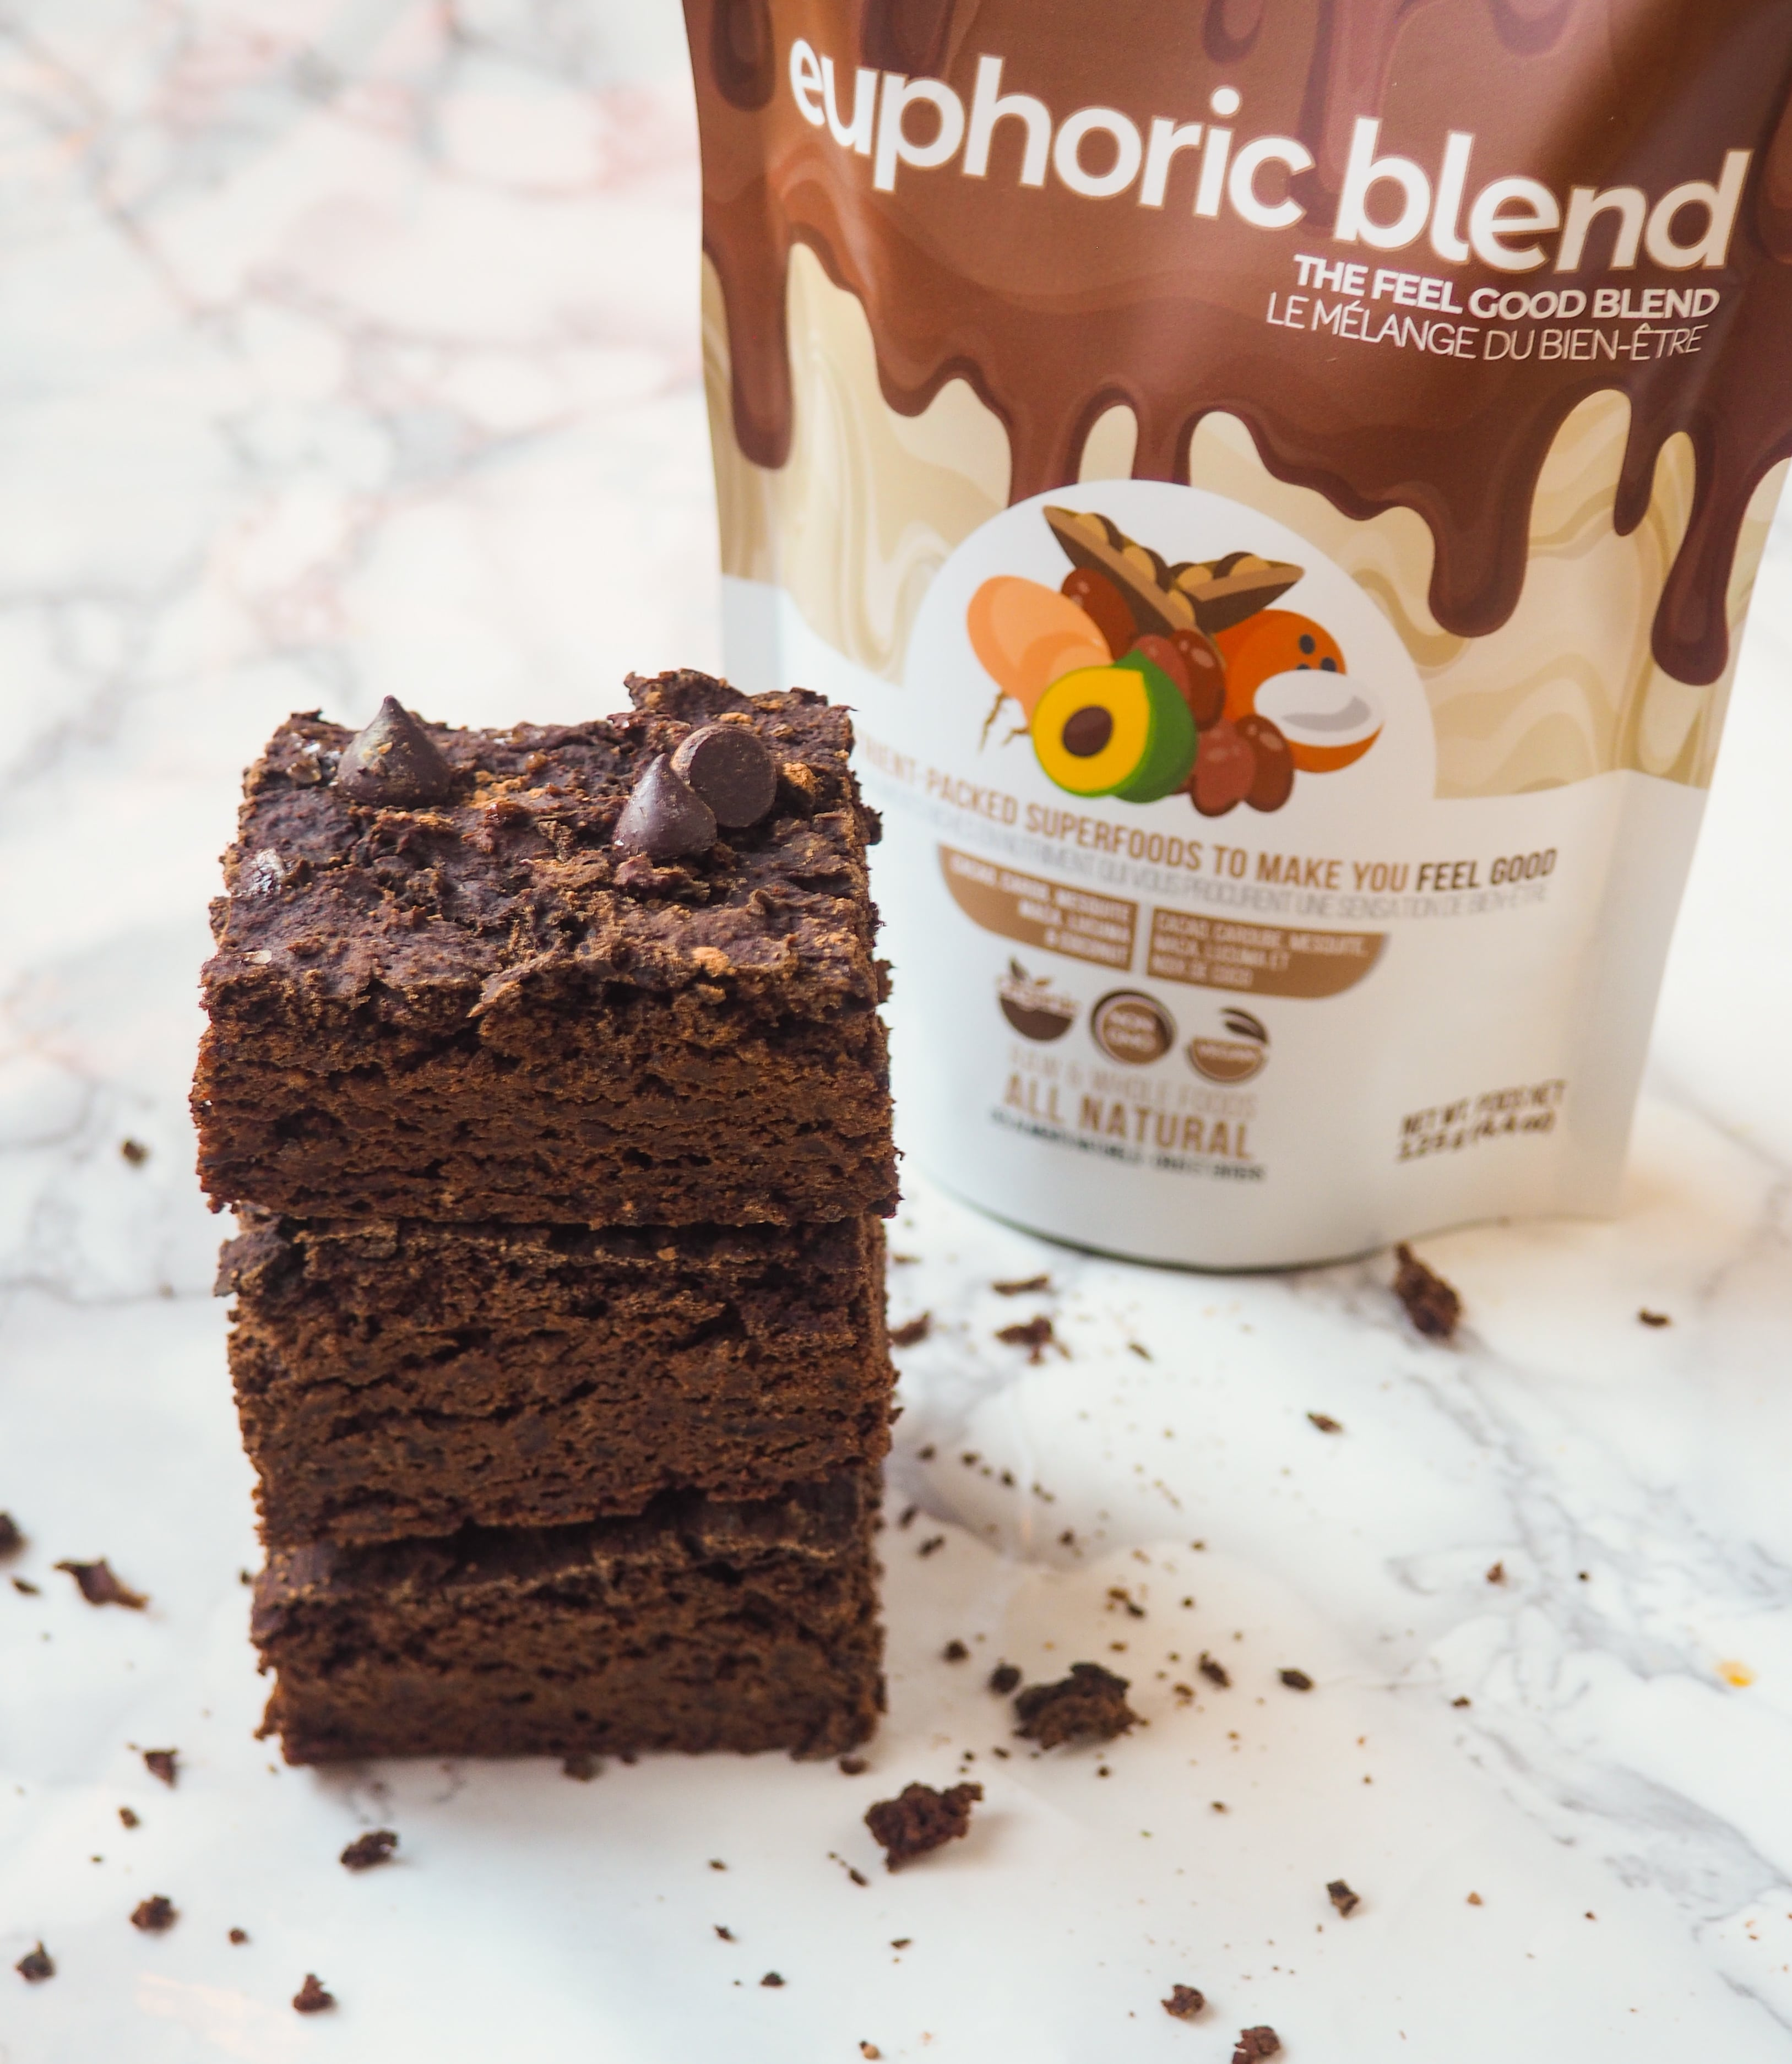 Chocolate banana brownies made using our superfood euphoric blend. Our euphoric blend has 6 powerful and delicious foods packed with antioxidants, healthy fats and adaptogens- Raw cacao, Carob, Mesquite, Maca, Lucuma and shredded Coconut. A healthy way to satisfy cravings and boost mood instantly!  Sustainably sourced, 'Better-than-fair-Trade', our blends are certified organic and plant-based making it vegan friendly with no added sugar!